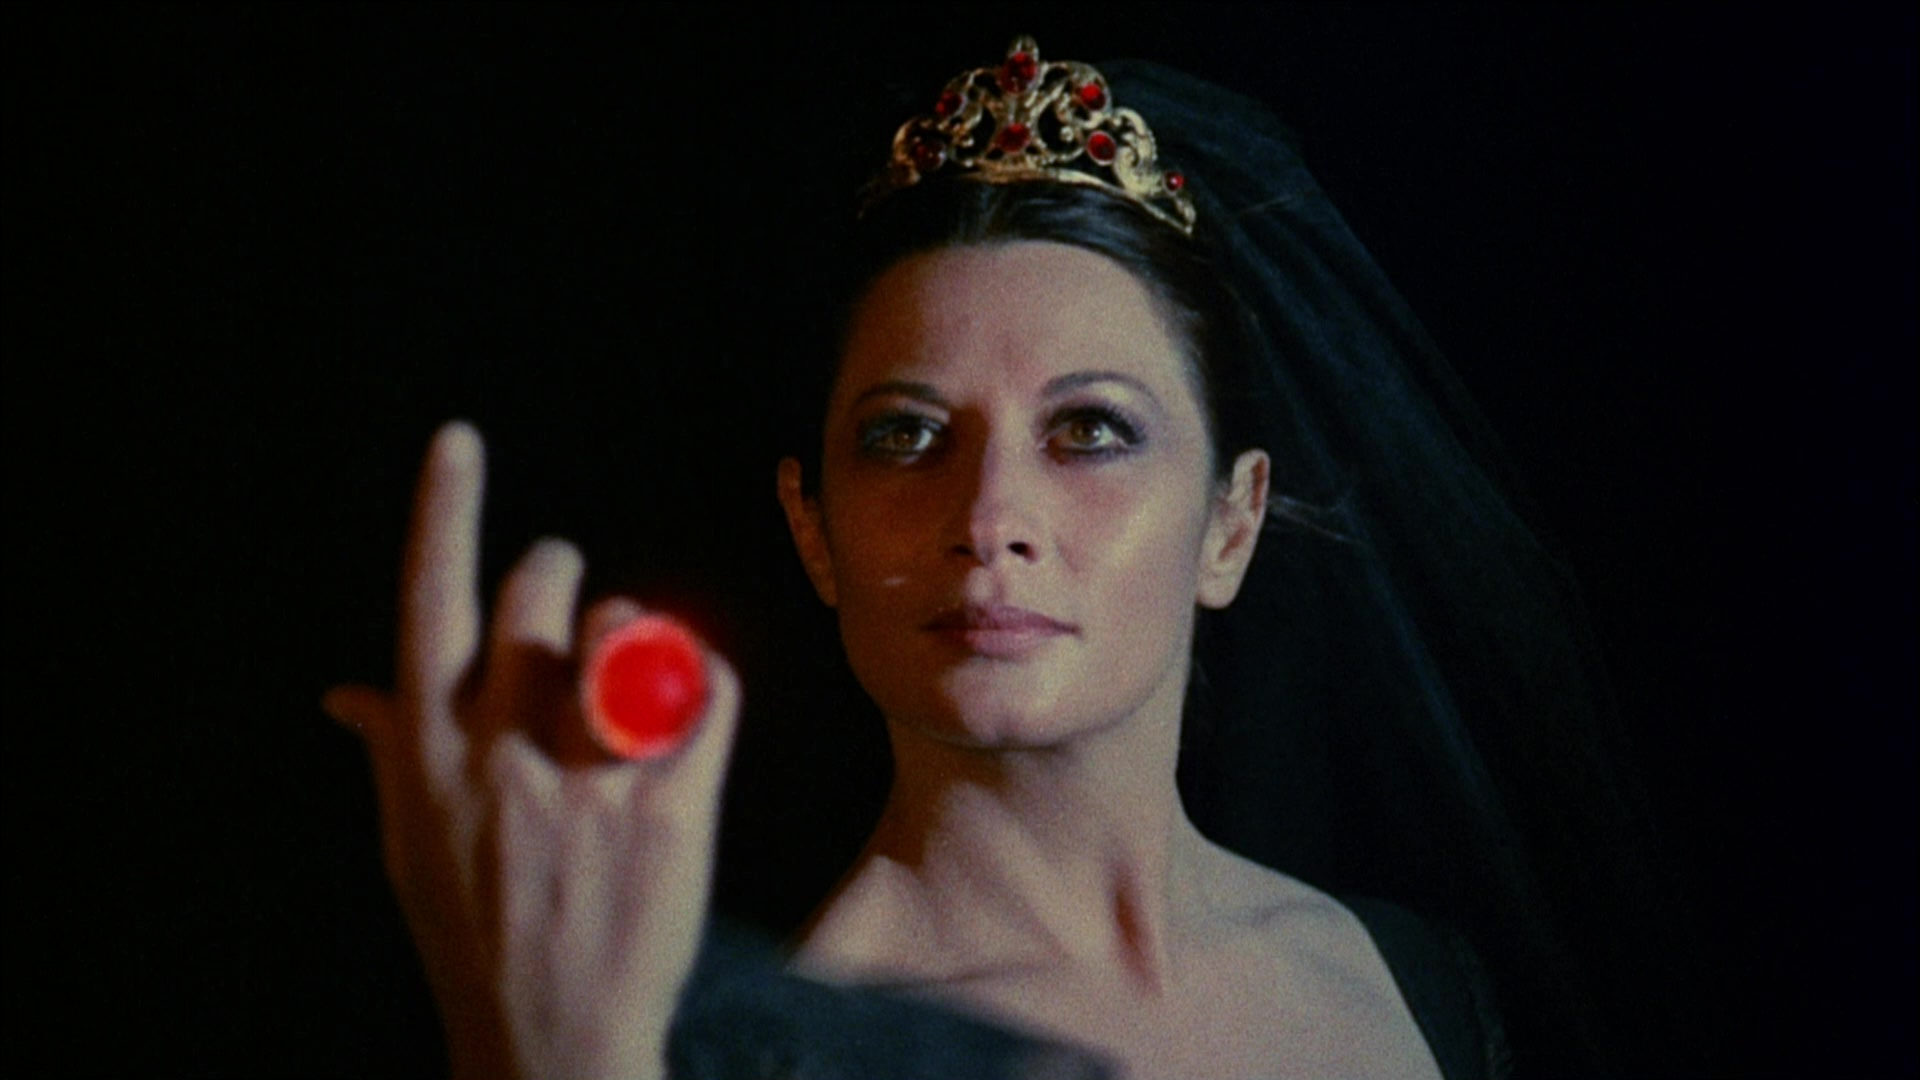 Countess Dolingen de Vries (Sara Bay/Rosalba Neri) wields the Ring of the Niebelungs in The Devil's Wedding Night (1973)